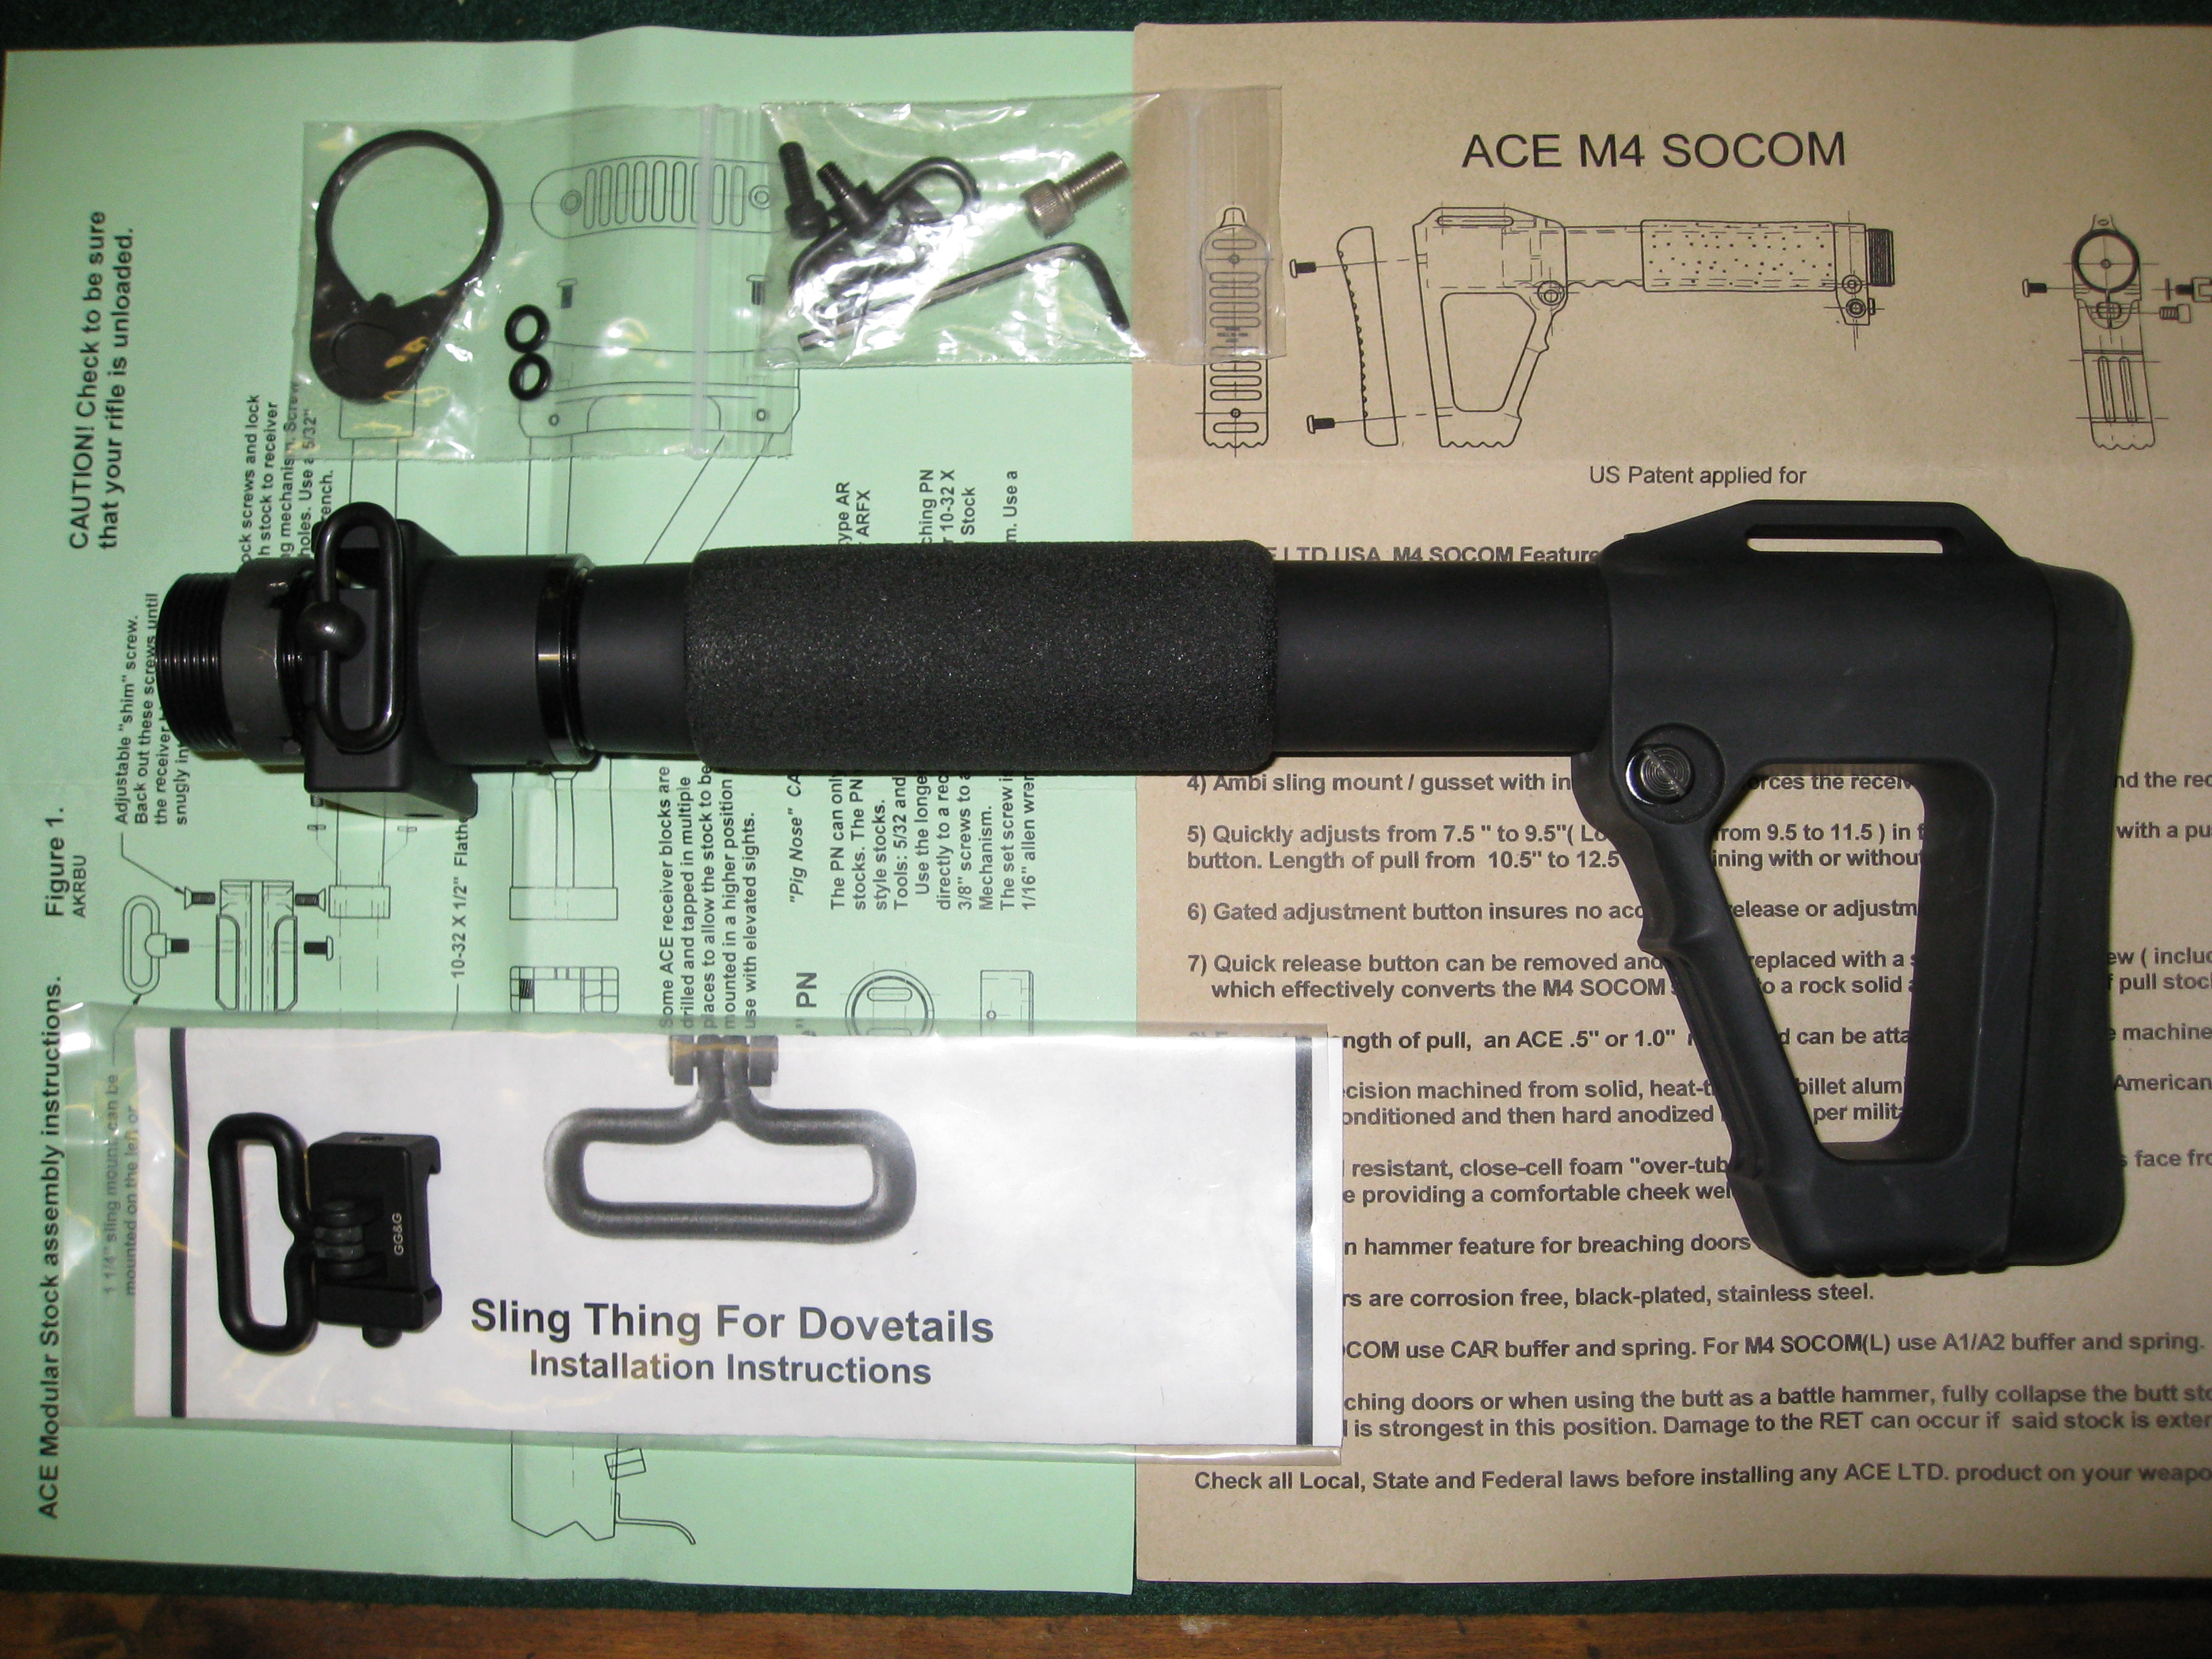 TRADED: M4 SOCOM folding stock + parts - The FAL Files